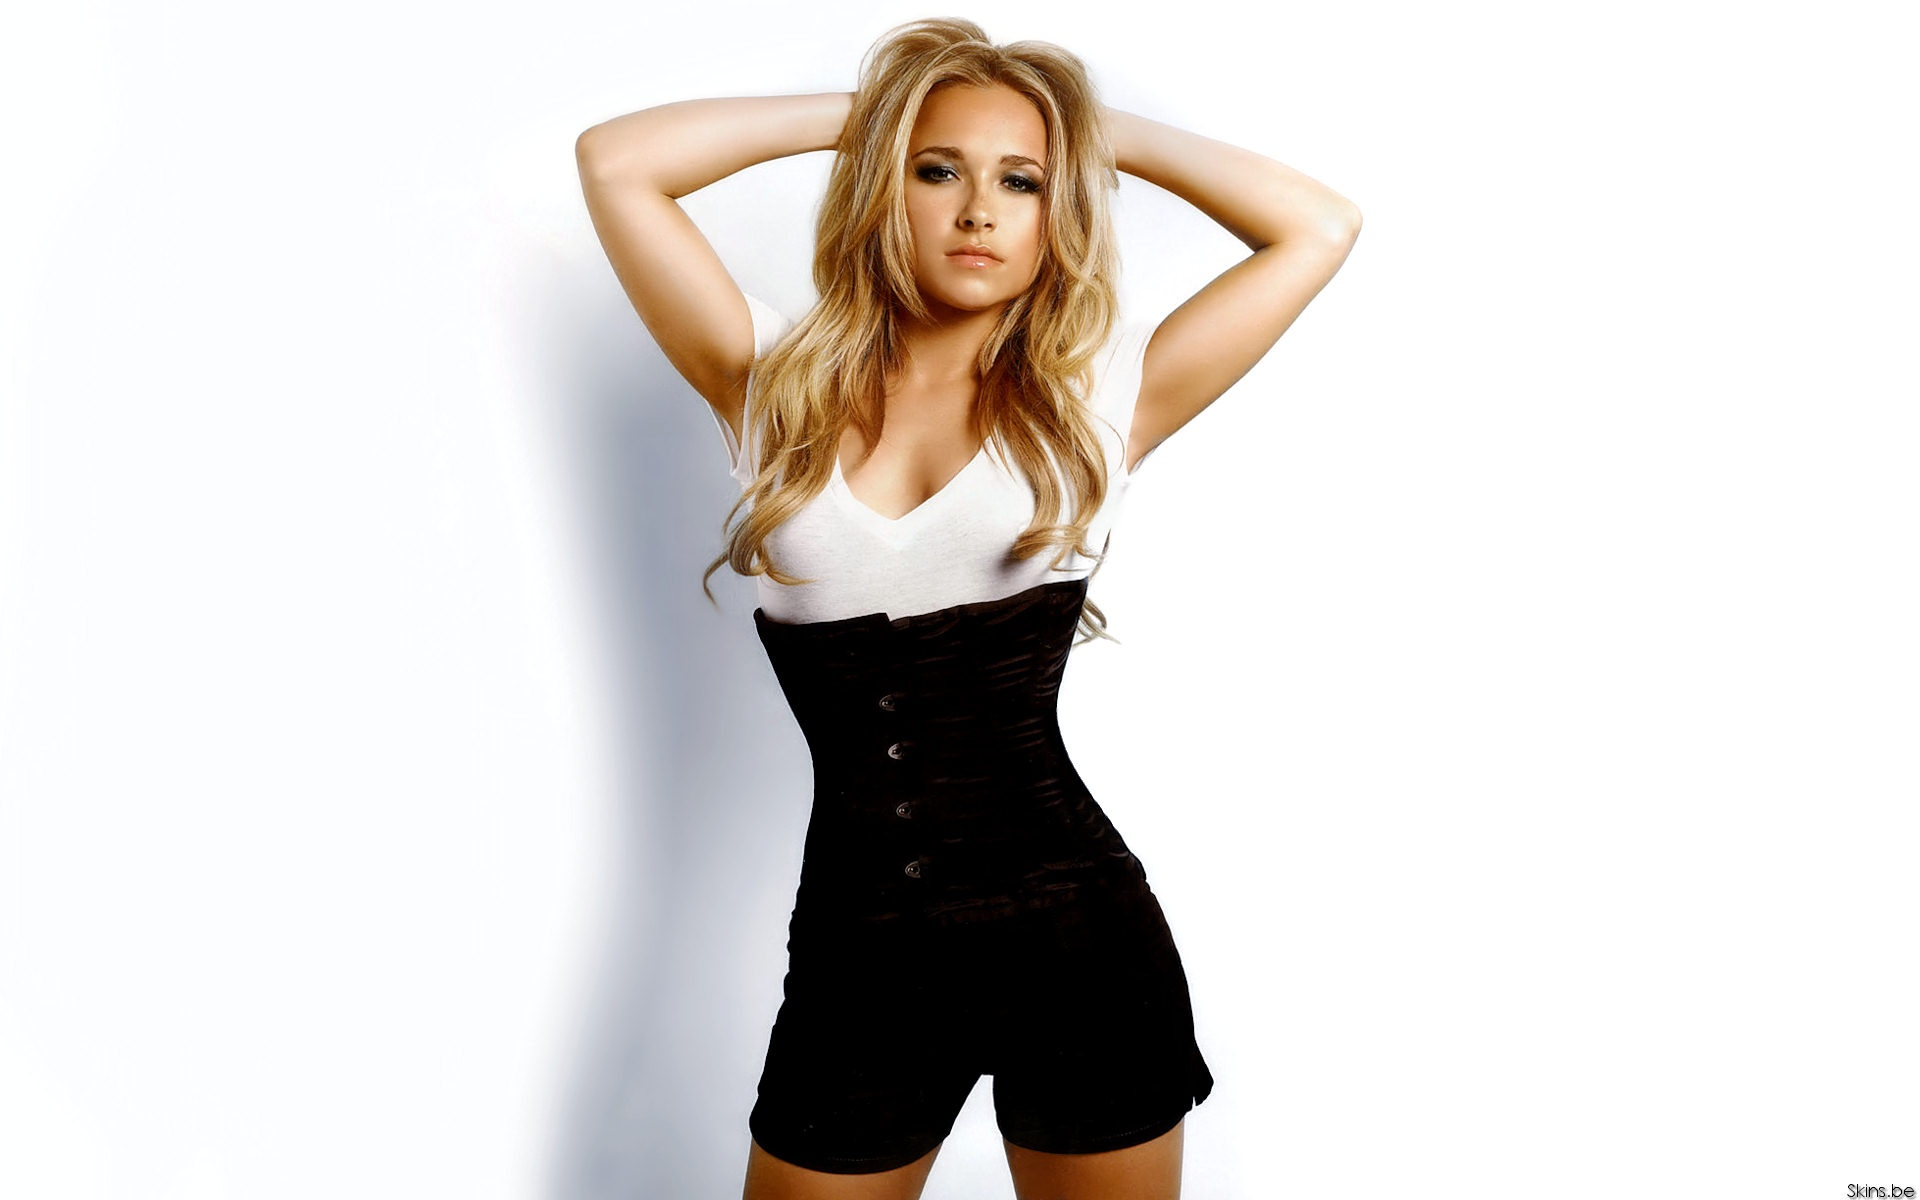 haydenpanettiere wallpapers hd A10